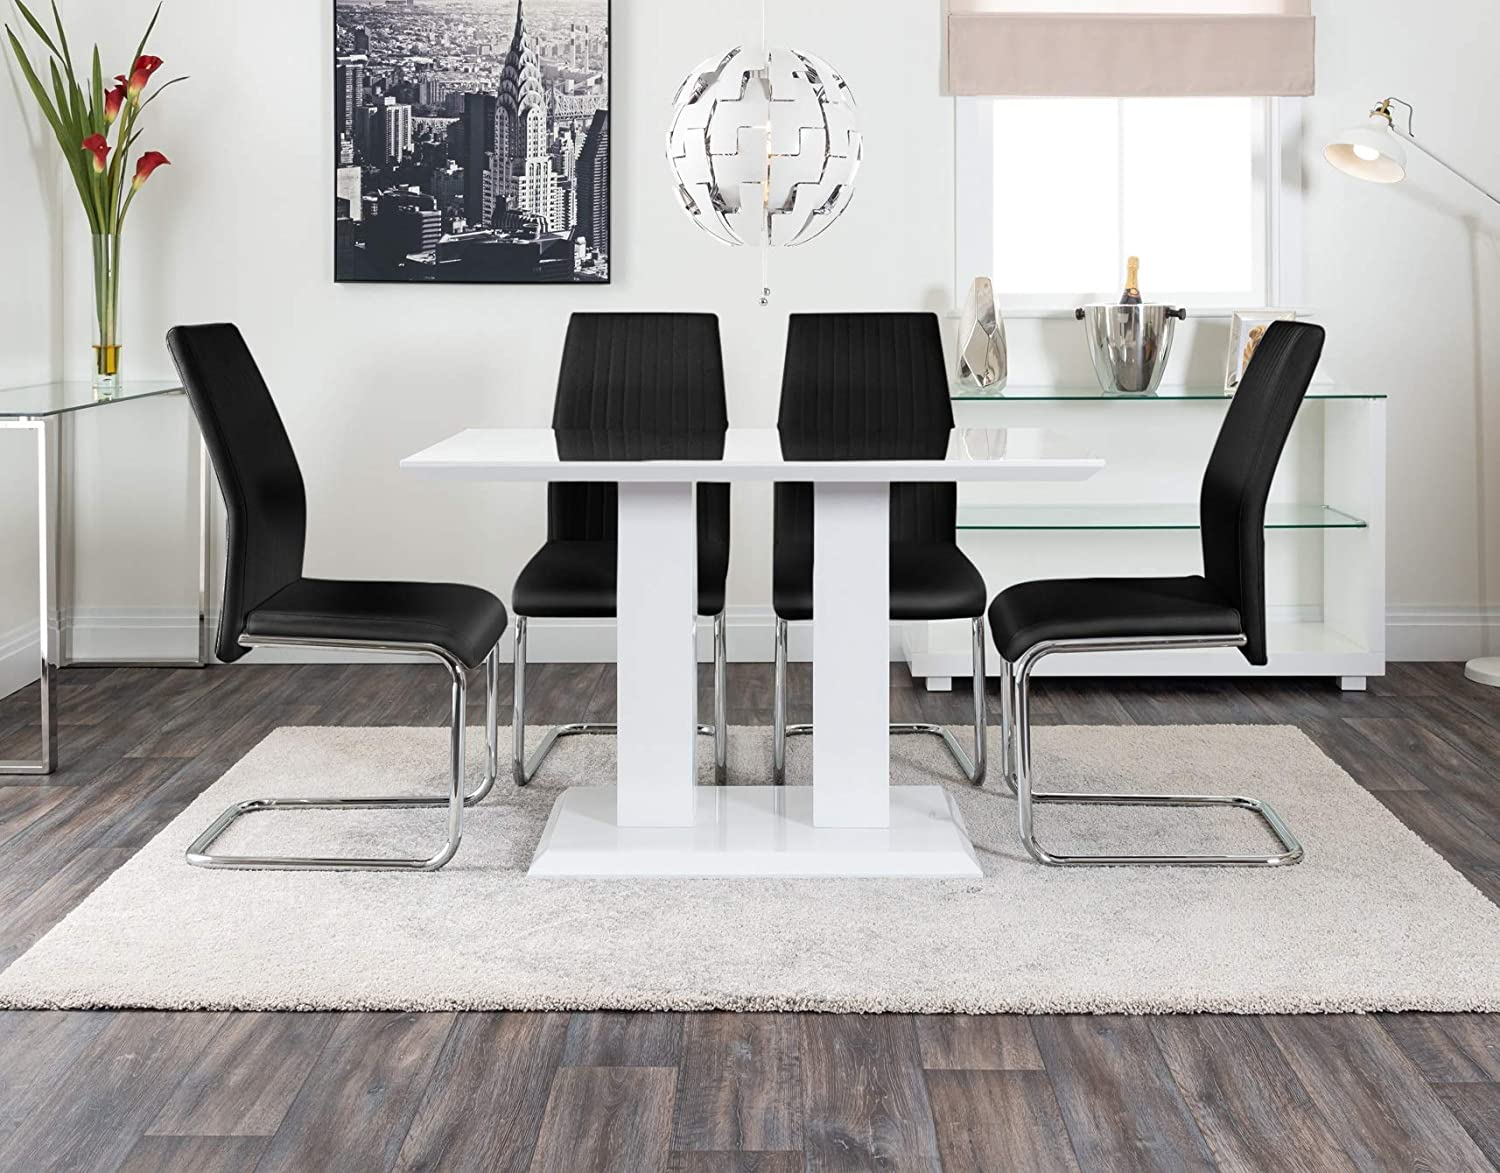 Tremendous Furniturebox Uk Imperia Modern White High Gloss Dining Table And 4 Lorenzo Chrome Leather Dining Chairs Set White Table Black Lorenzo Chairs Ncnpc Chair Design For Home Ncnpcorg